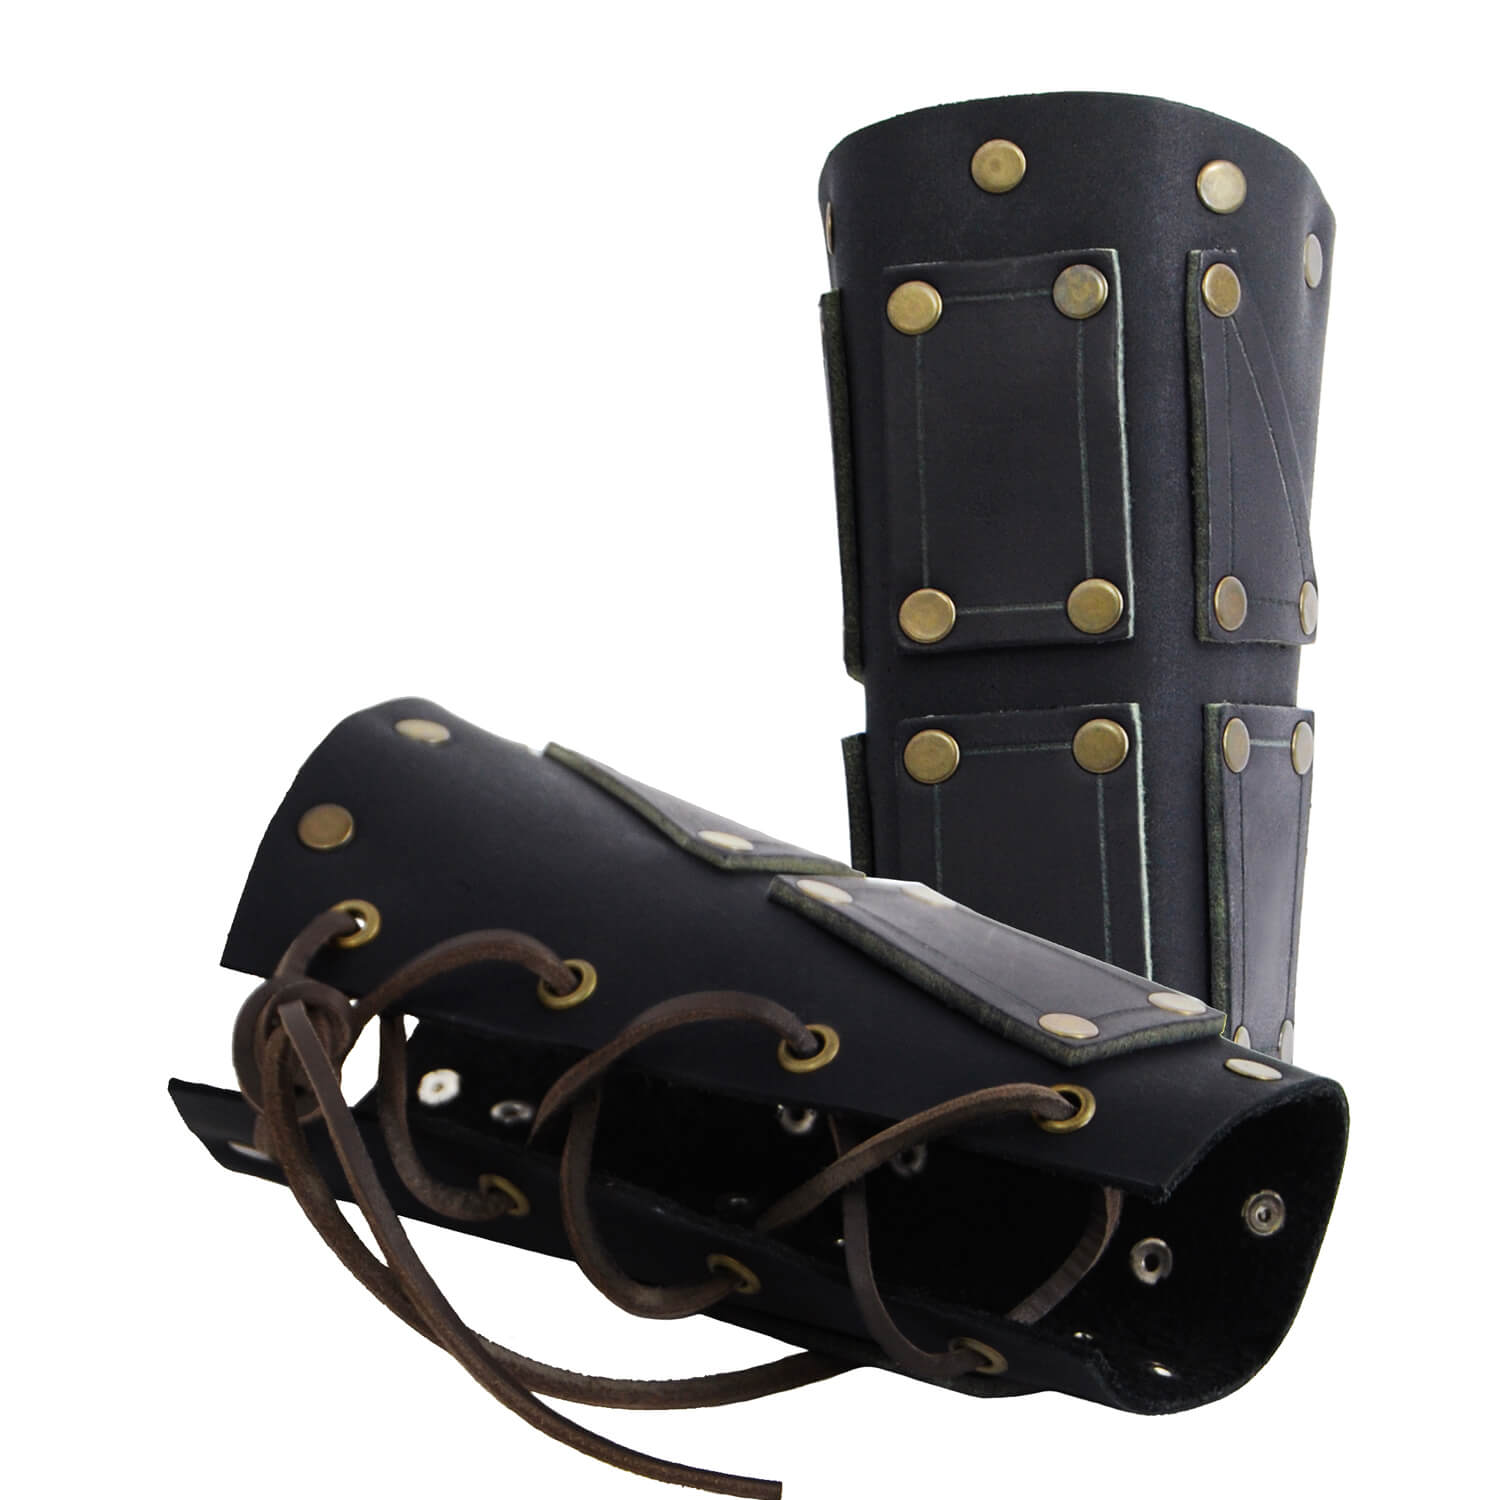 Bohemond Bracers